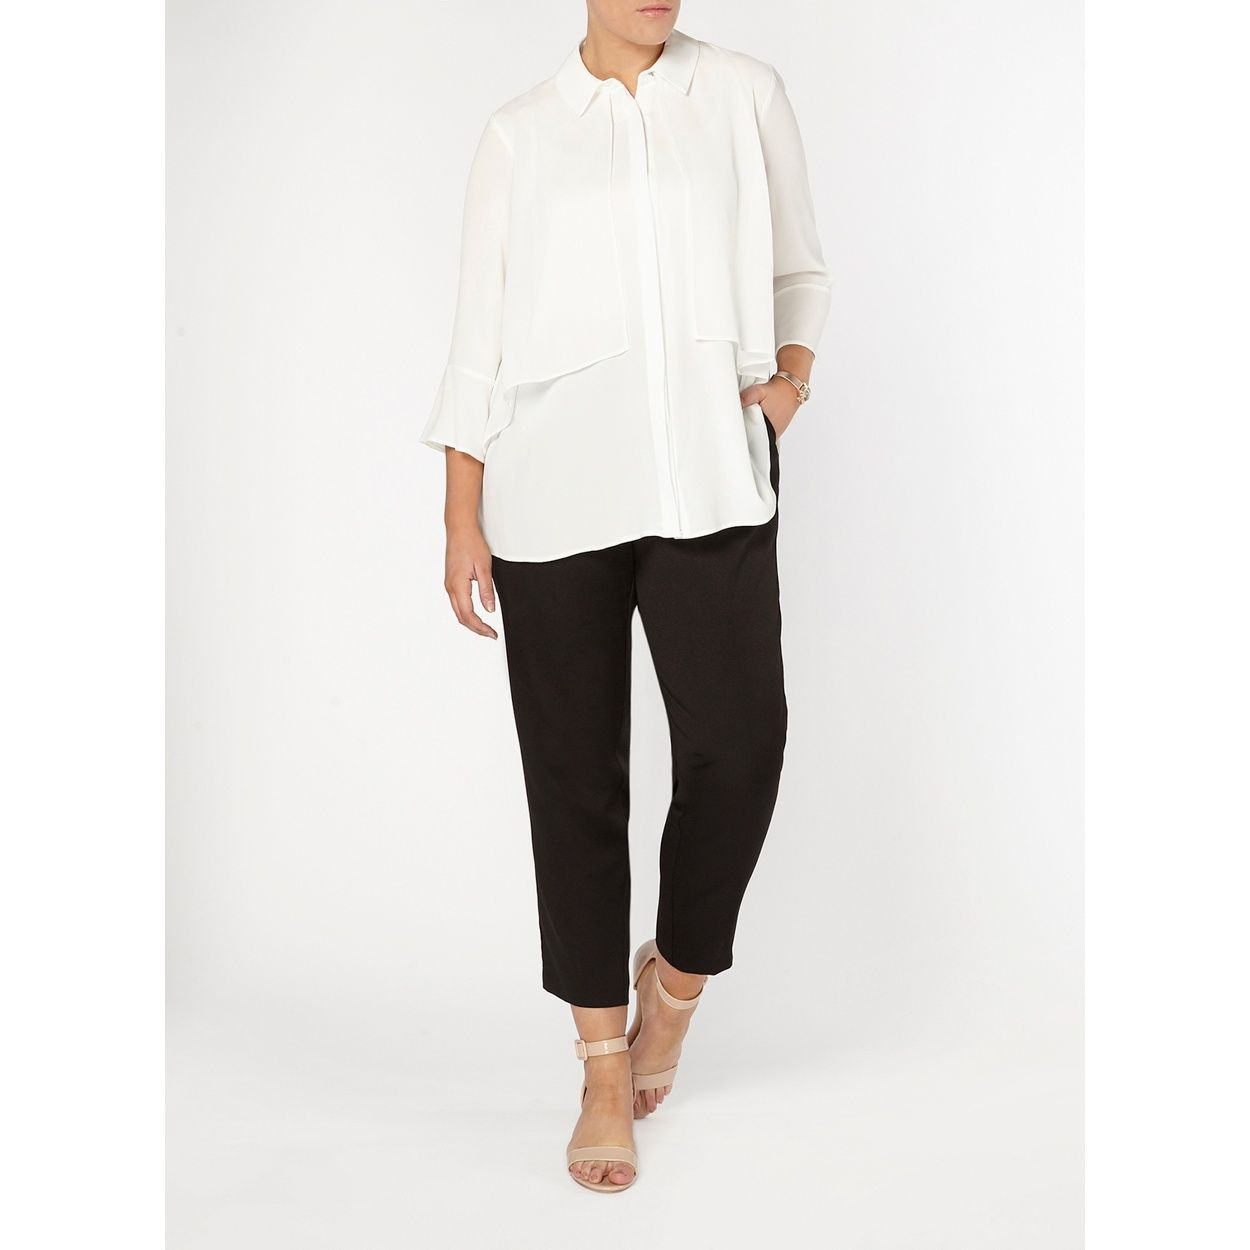 a851f10896b3d9 Evans ivory blouse with fluted cuffs and a double layer front panel ...